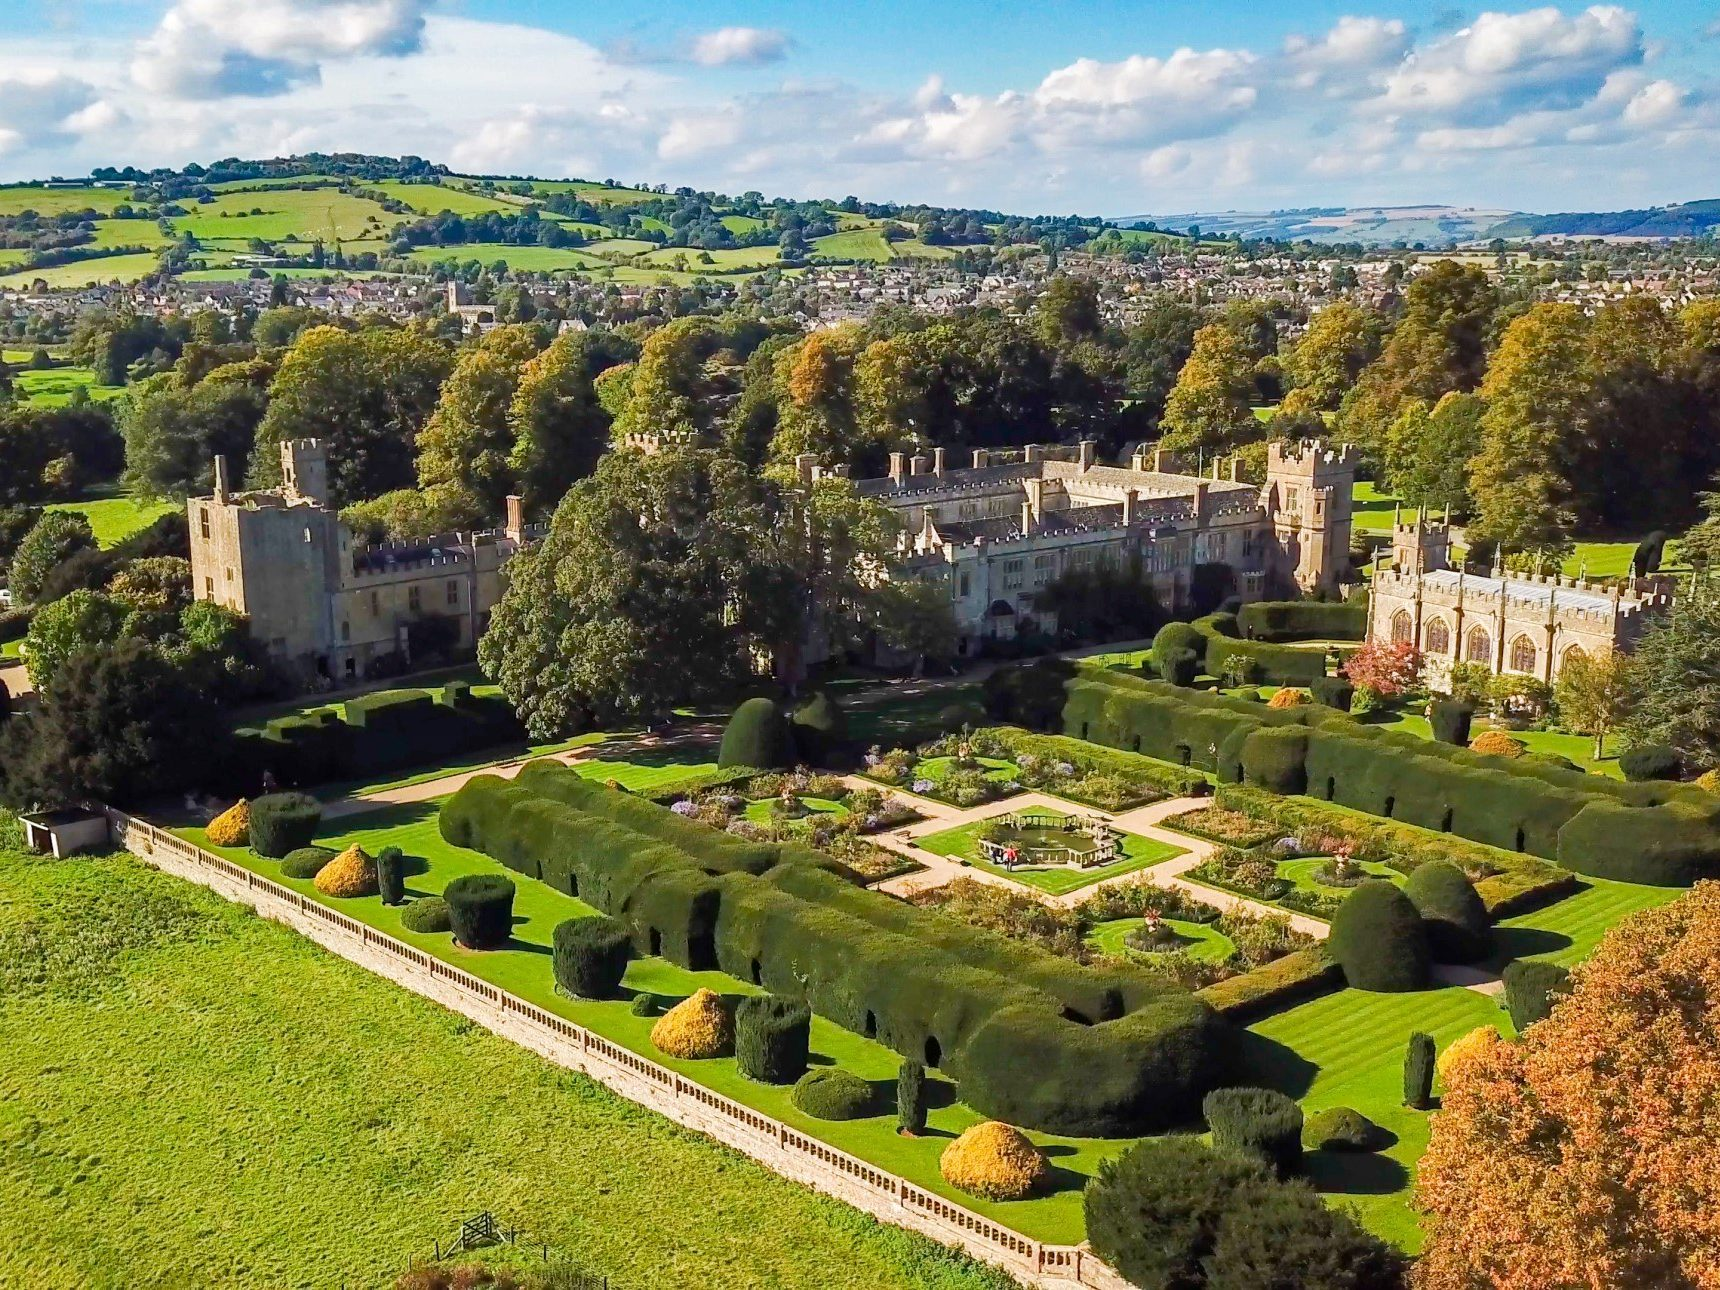 aerial view of suceley castle, gardens and wider estate